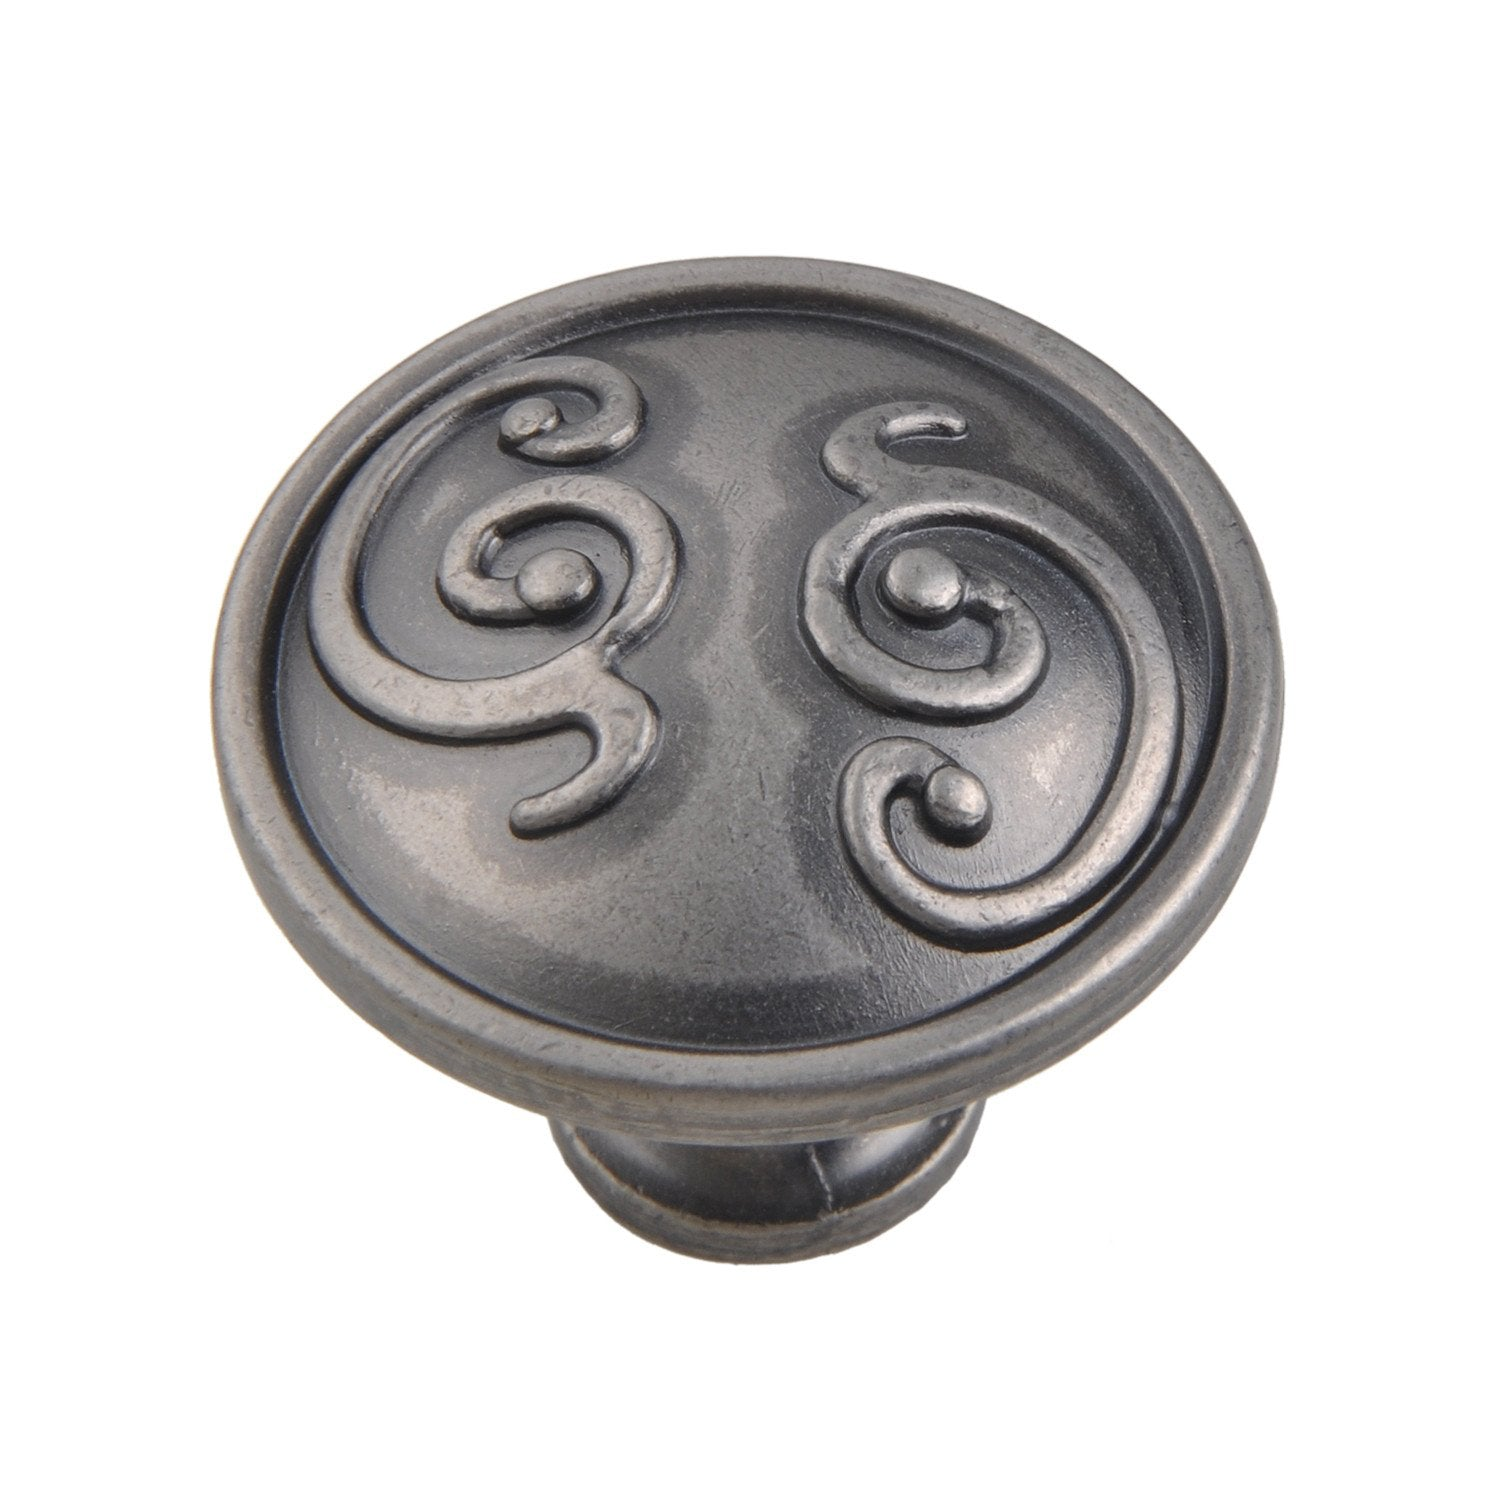 "Roma Cabinet Knob, Pewter, Brass, or Bronze, 1.25"" - Loft97 - 3"